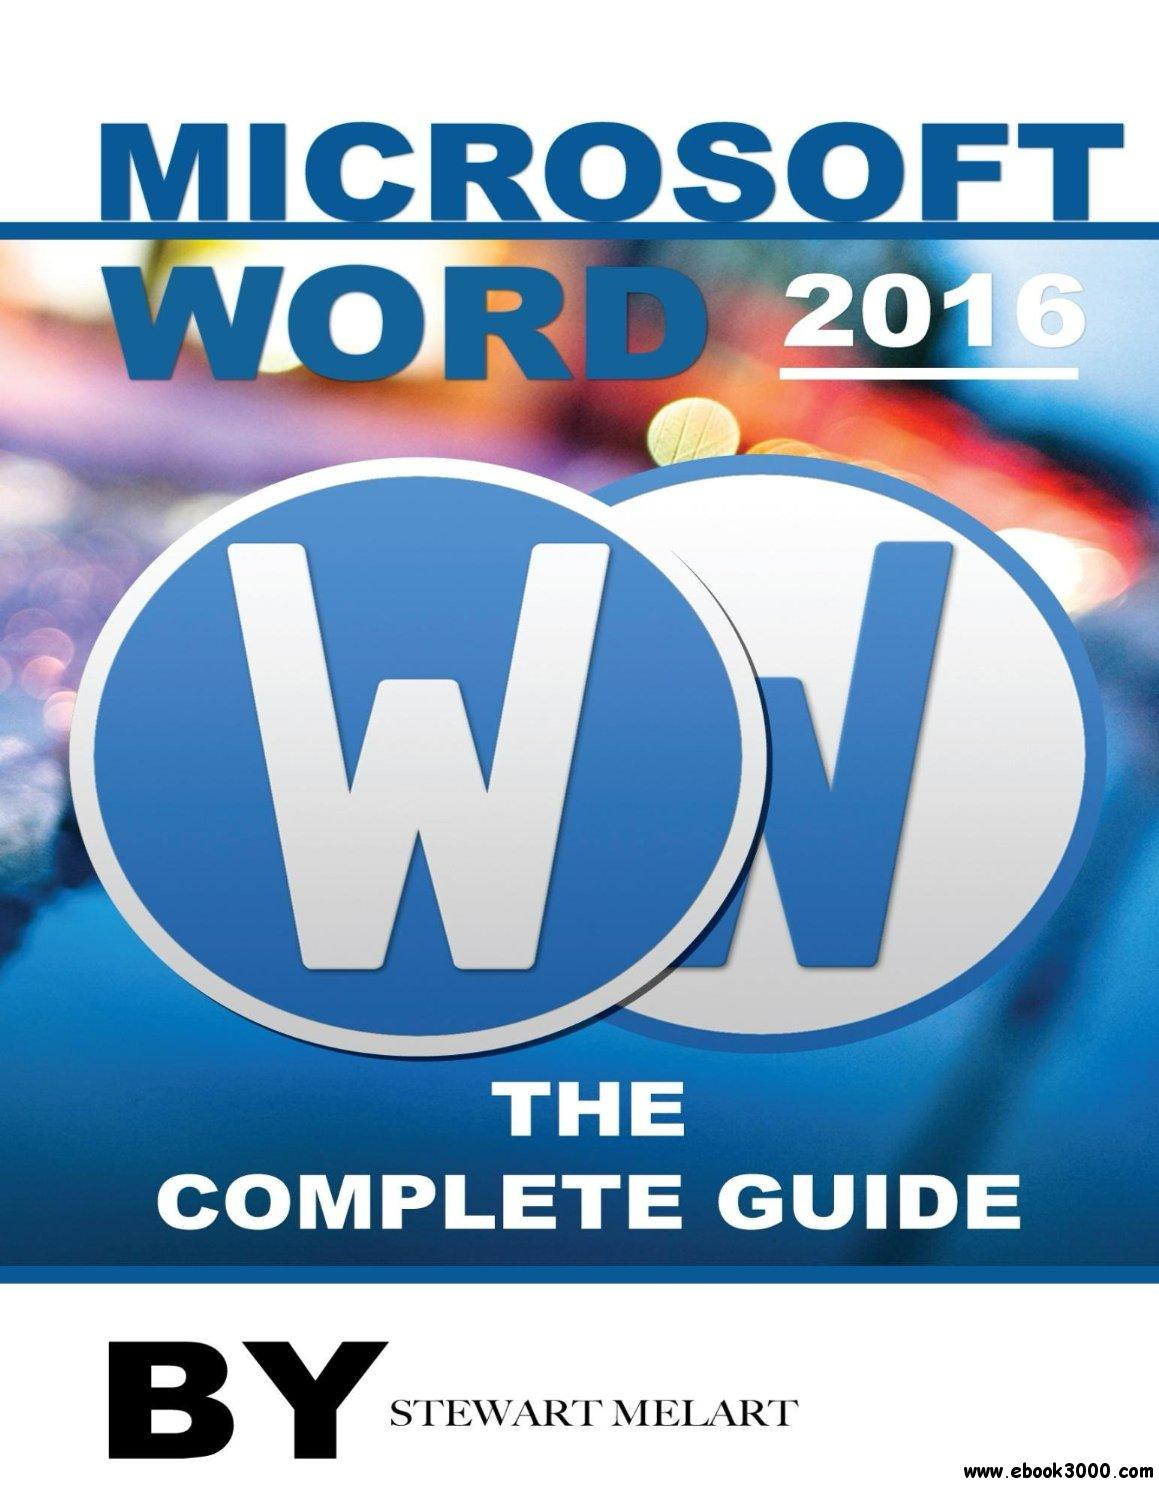 Microsoft Word 2016 The Complete Guide Free Ebooks Download